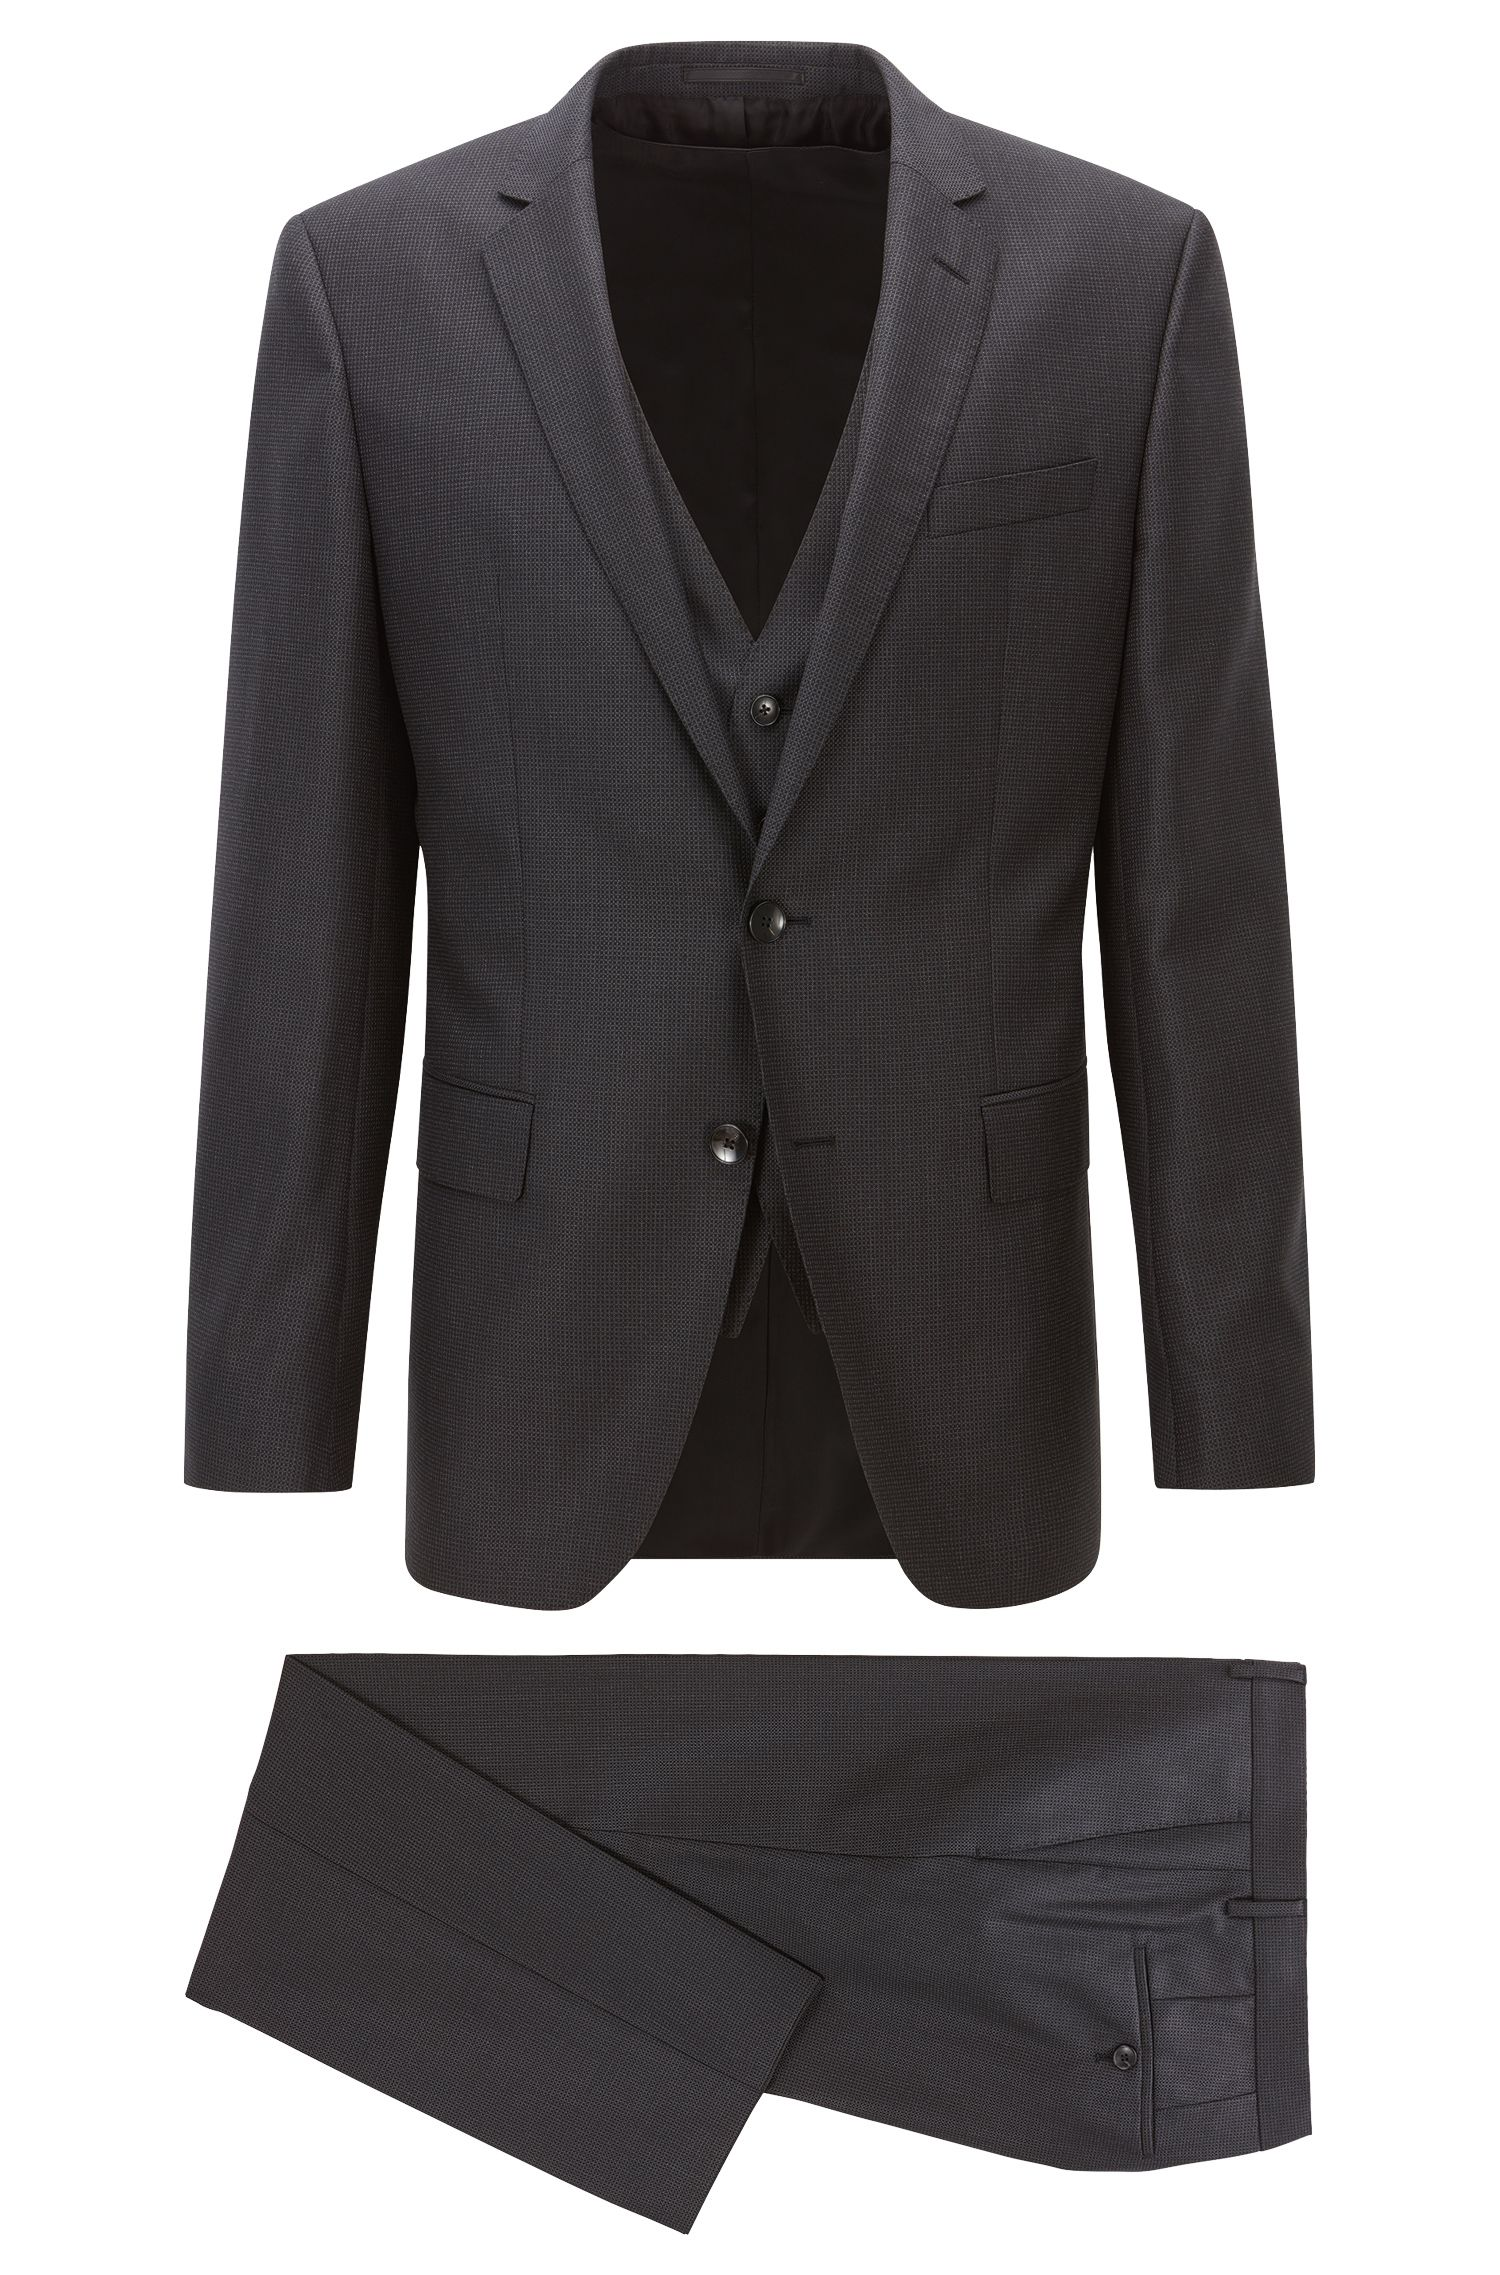 Nailhead Super 120 Virgin Wool 3-Piece Suit, Slim Fit | Huge/Genius WE